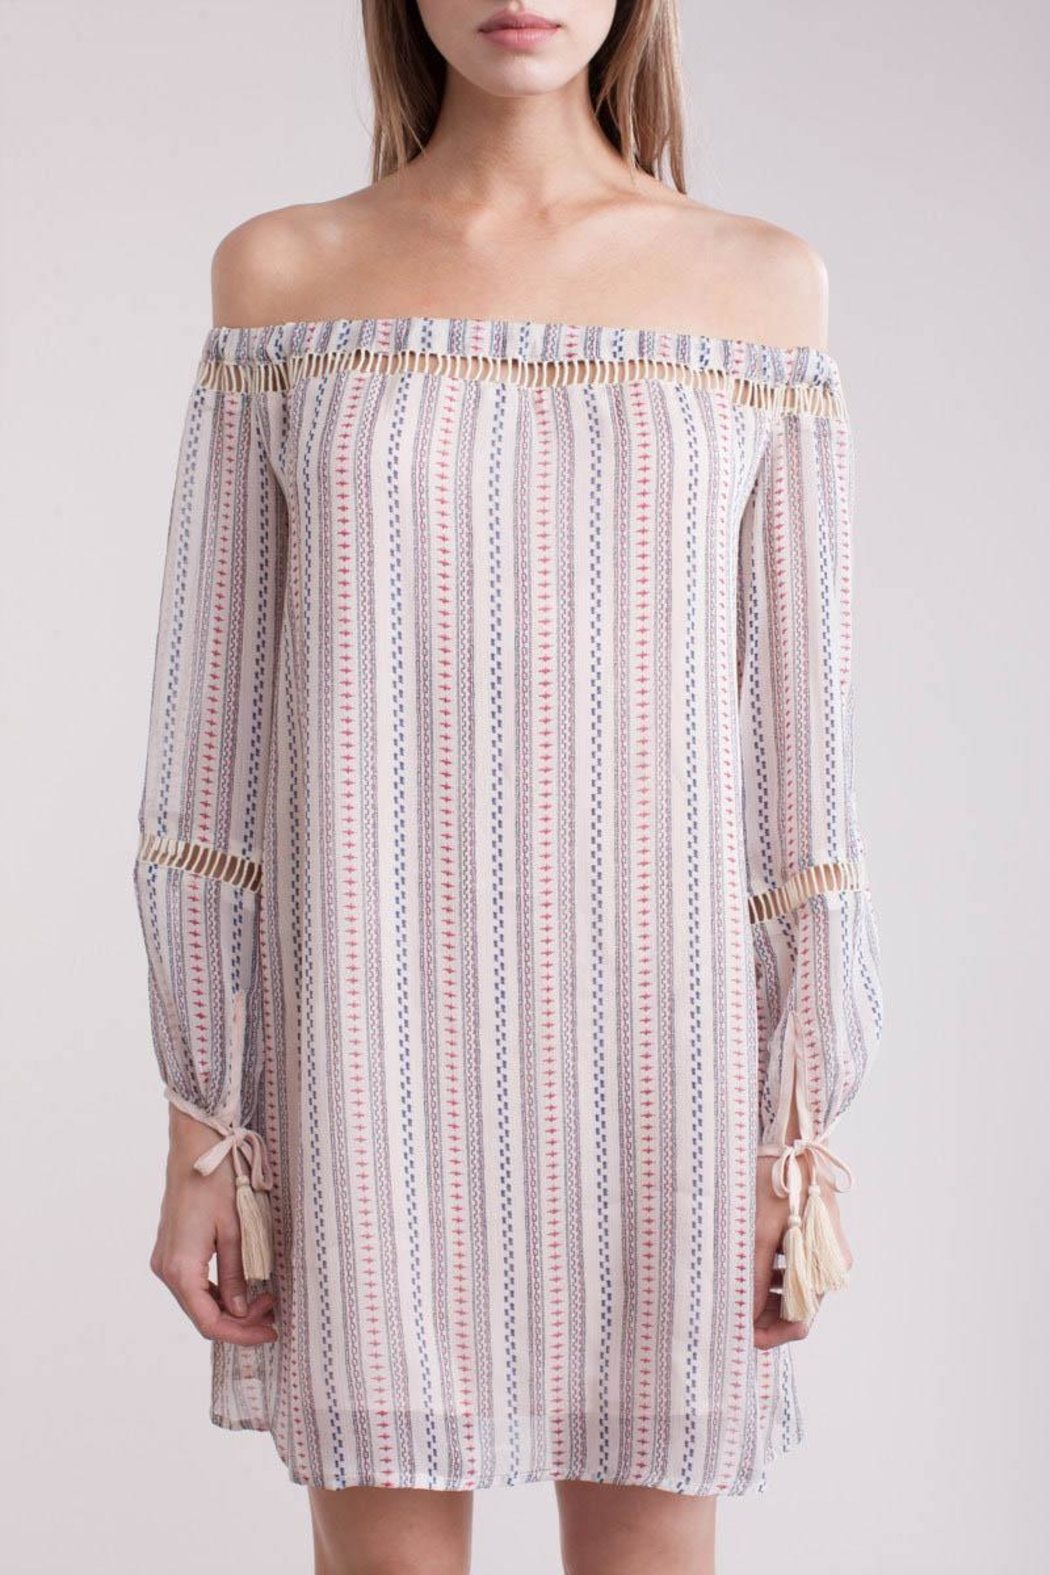 People Outfitter Branford Dress - Side Cropped Image